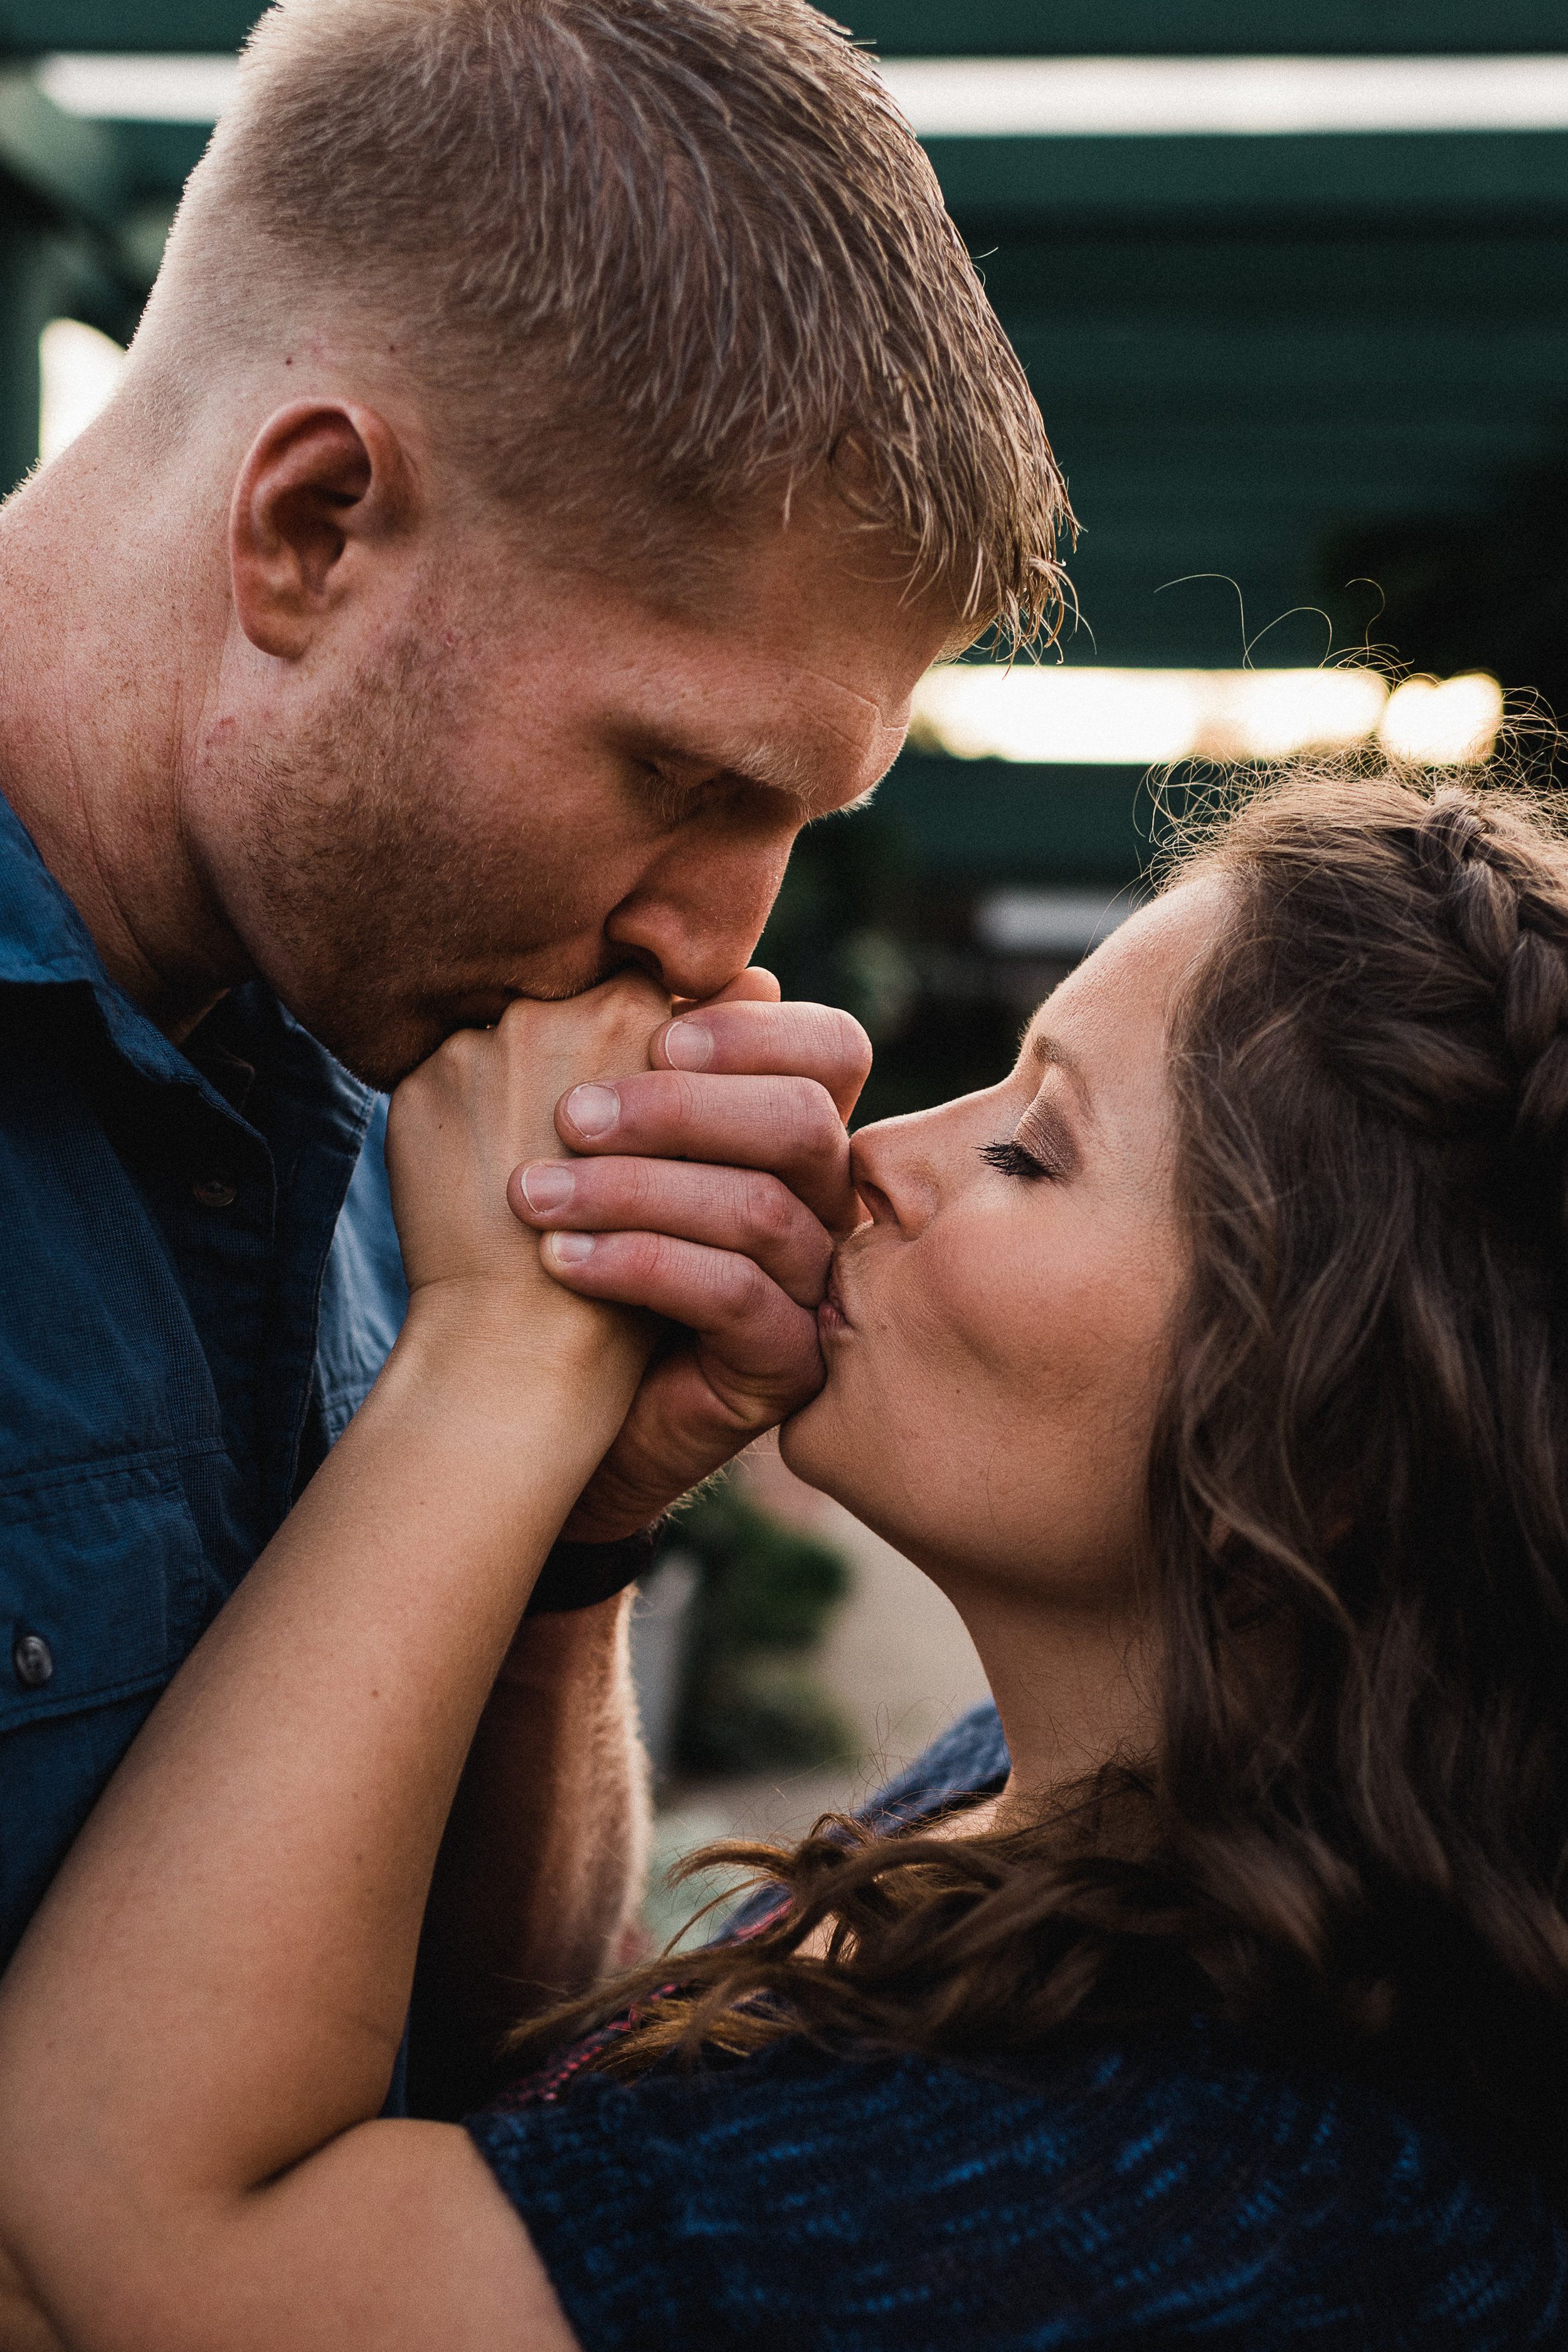 Engaged couple holds hands and kisses each other's hands with eyes closed.